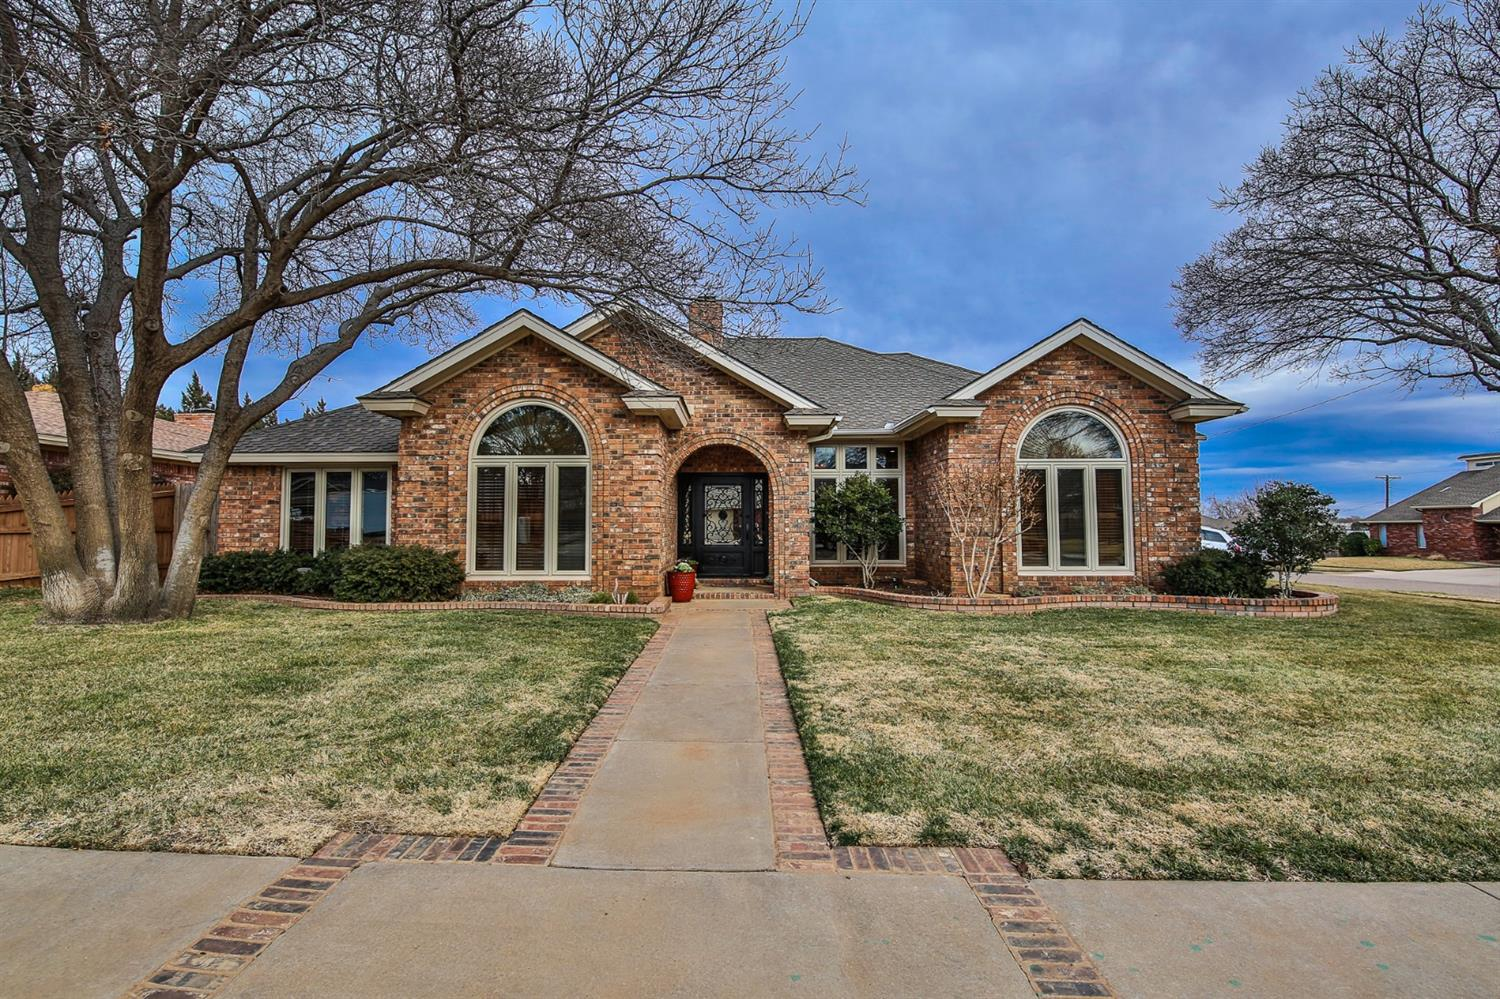 This home has it all. It is located on a large corner lot in Frenship School district. It is a one owner, 3/2/2, with a basement, oversized garage, and additional parking. This is a custom built and very well maintained home. This home is updated with high quality wood cabinets, beautiful natural granite, a gorgeous iron front door, new windows, and so much more. Please call for a private tour.